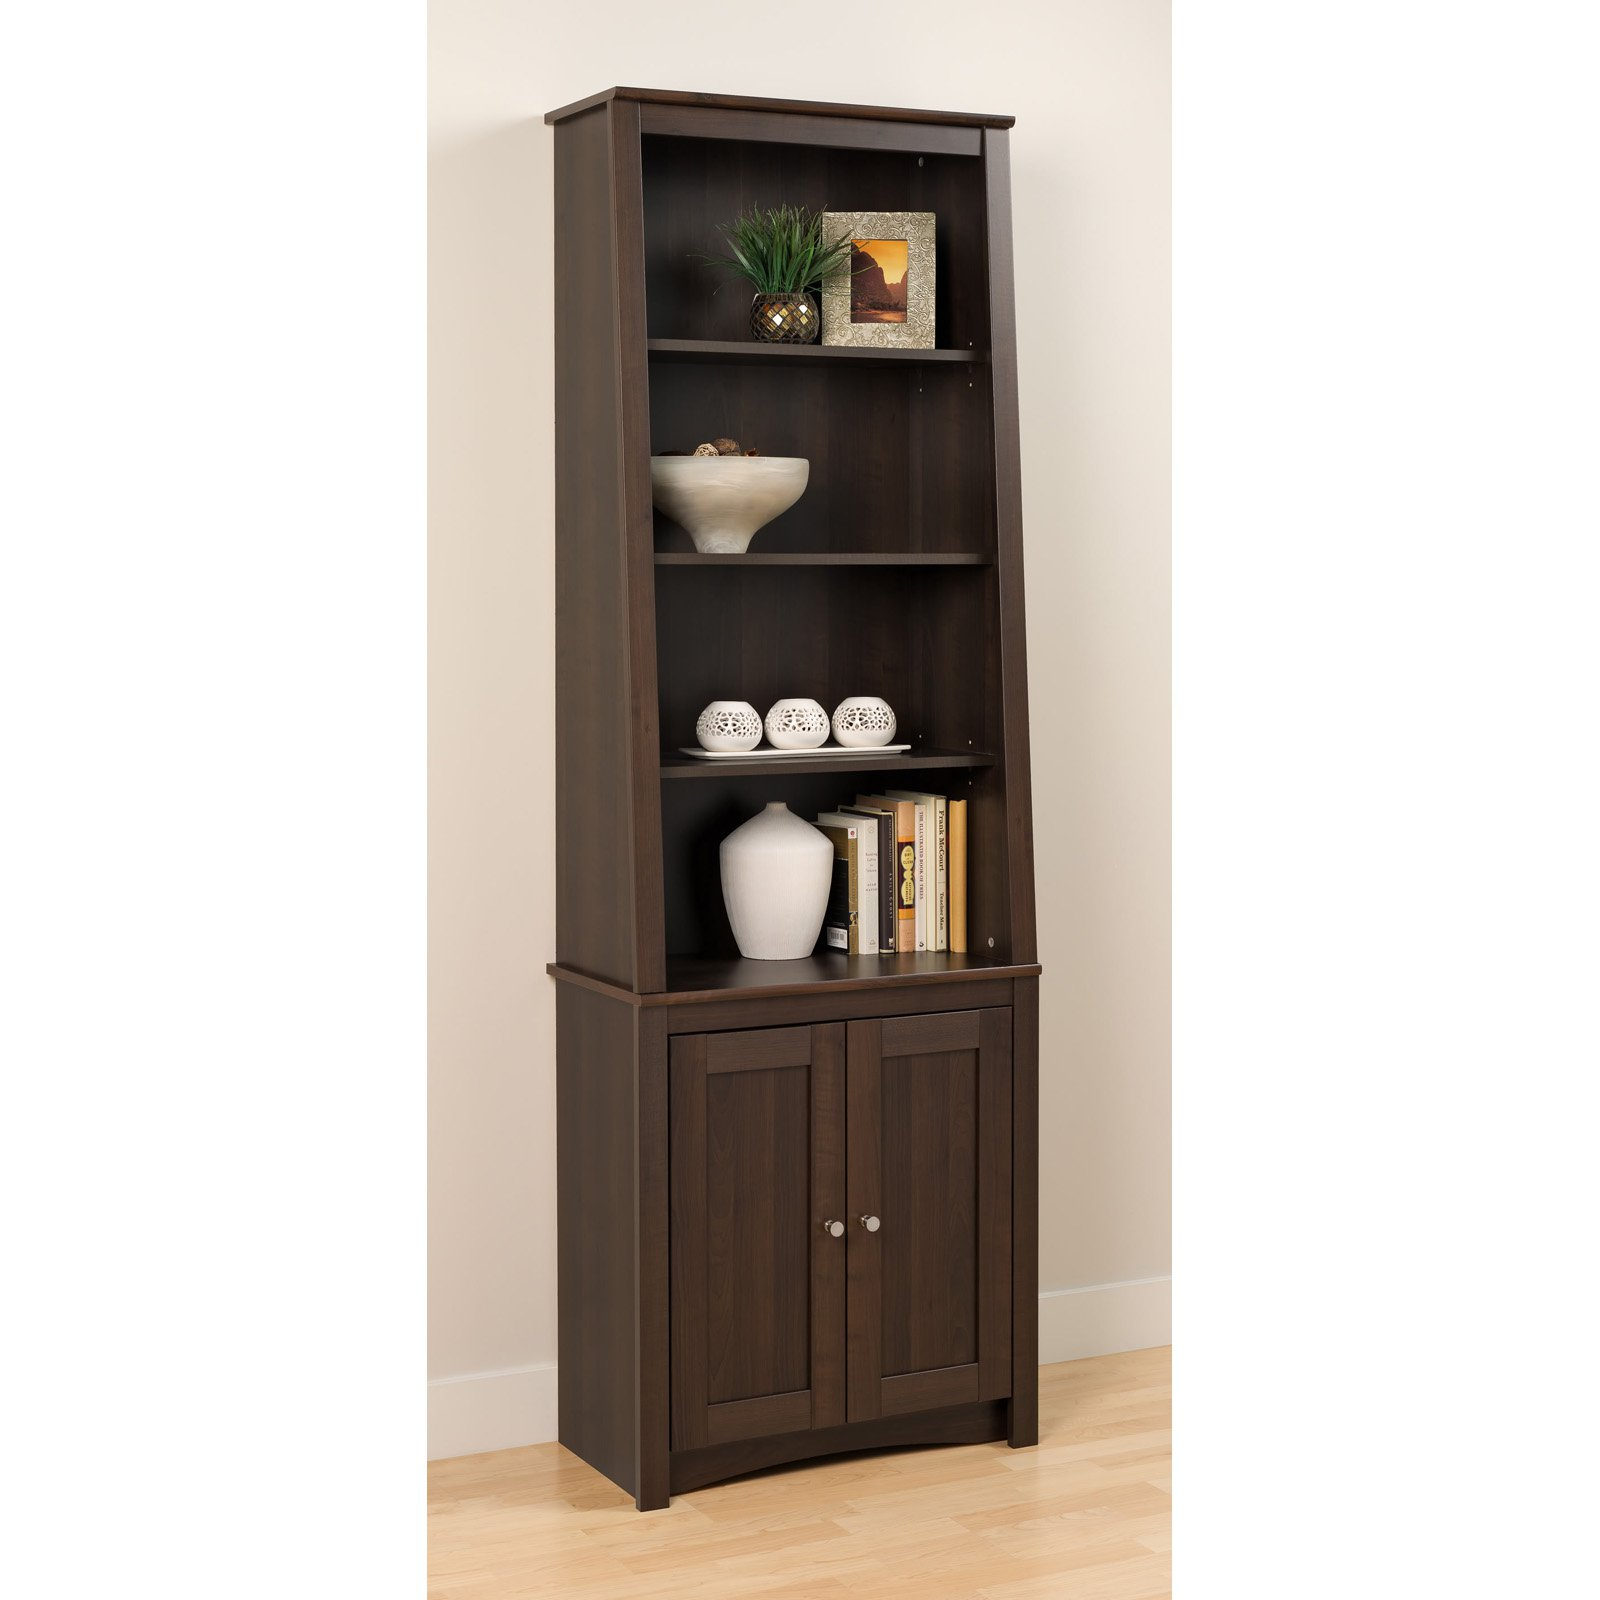 Prepac 6-Shelf Slant Back Bookcase with Doors, Espresso by Prepac Manufacturing Ltd